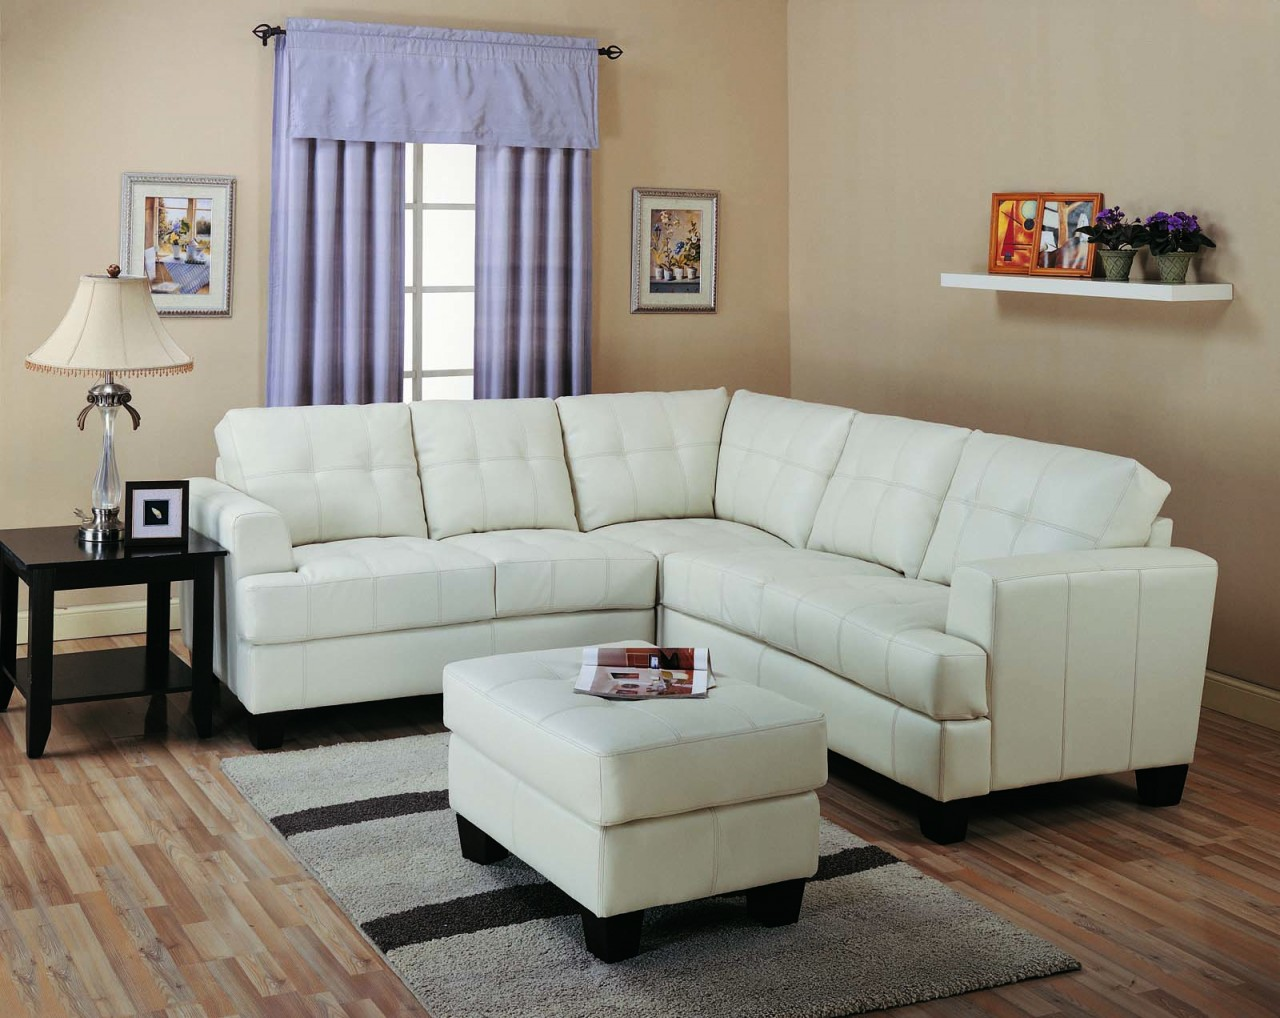 Types of Best Small Sectional Couches for Small Living ...